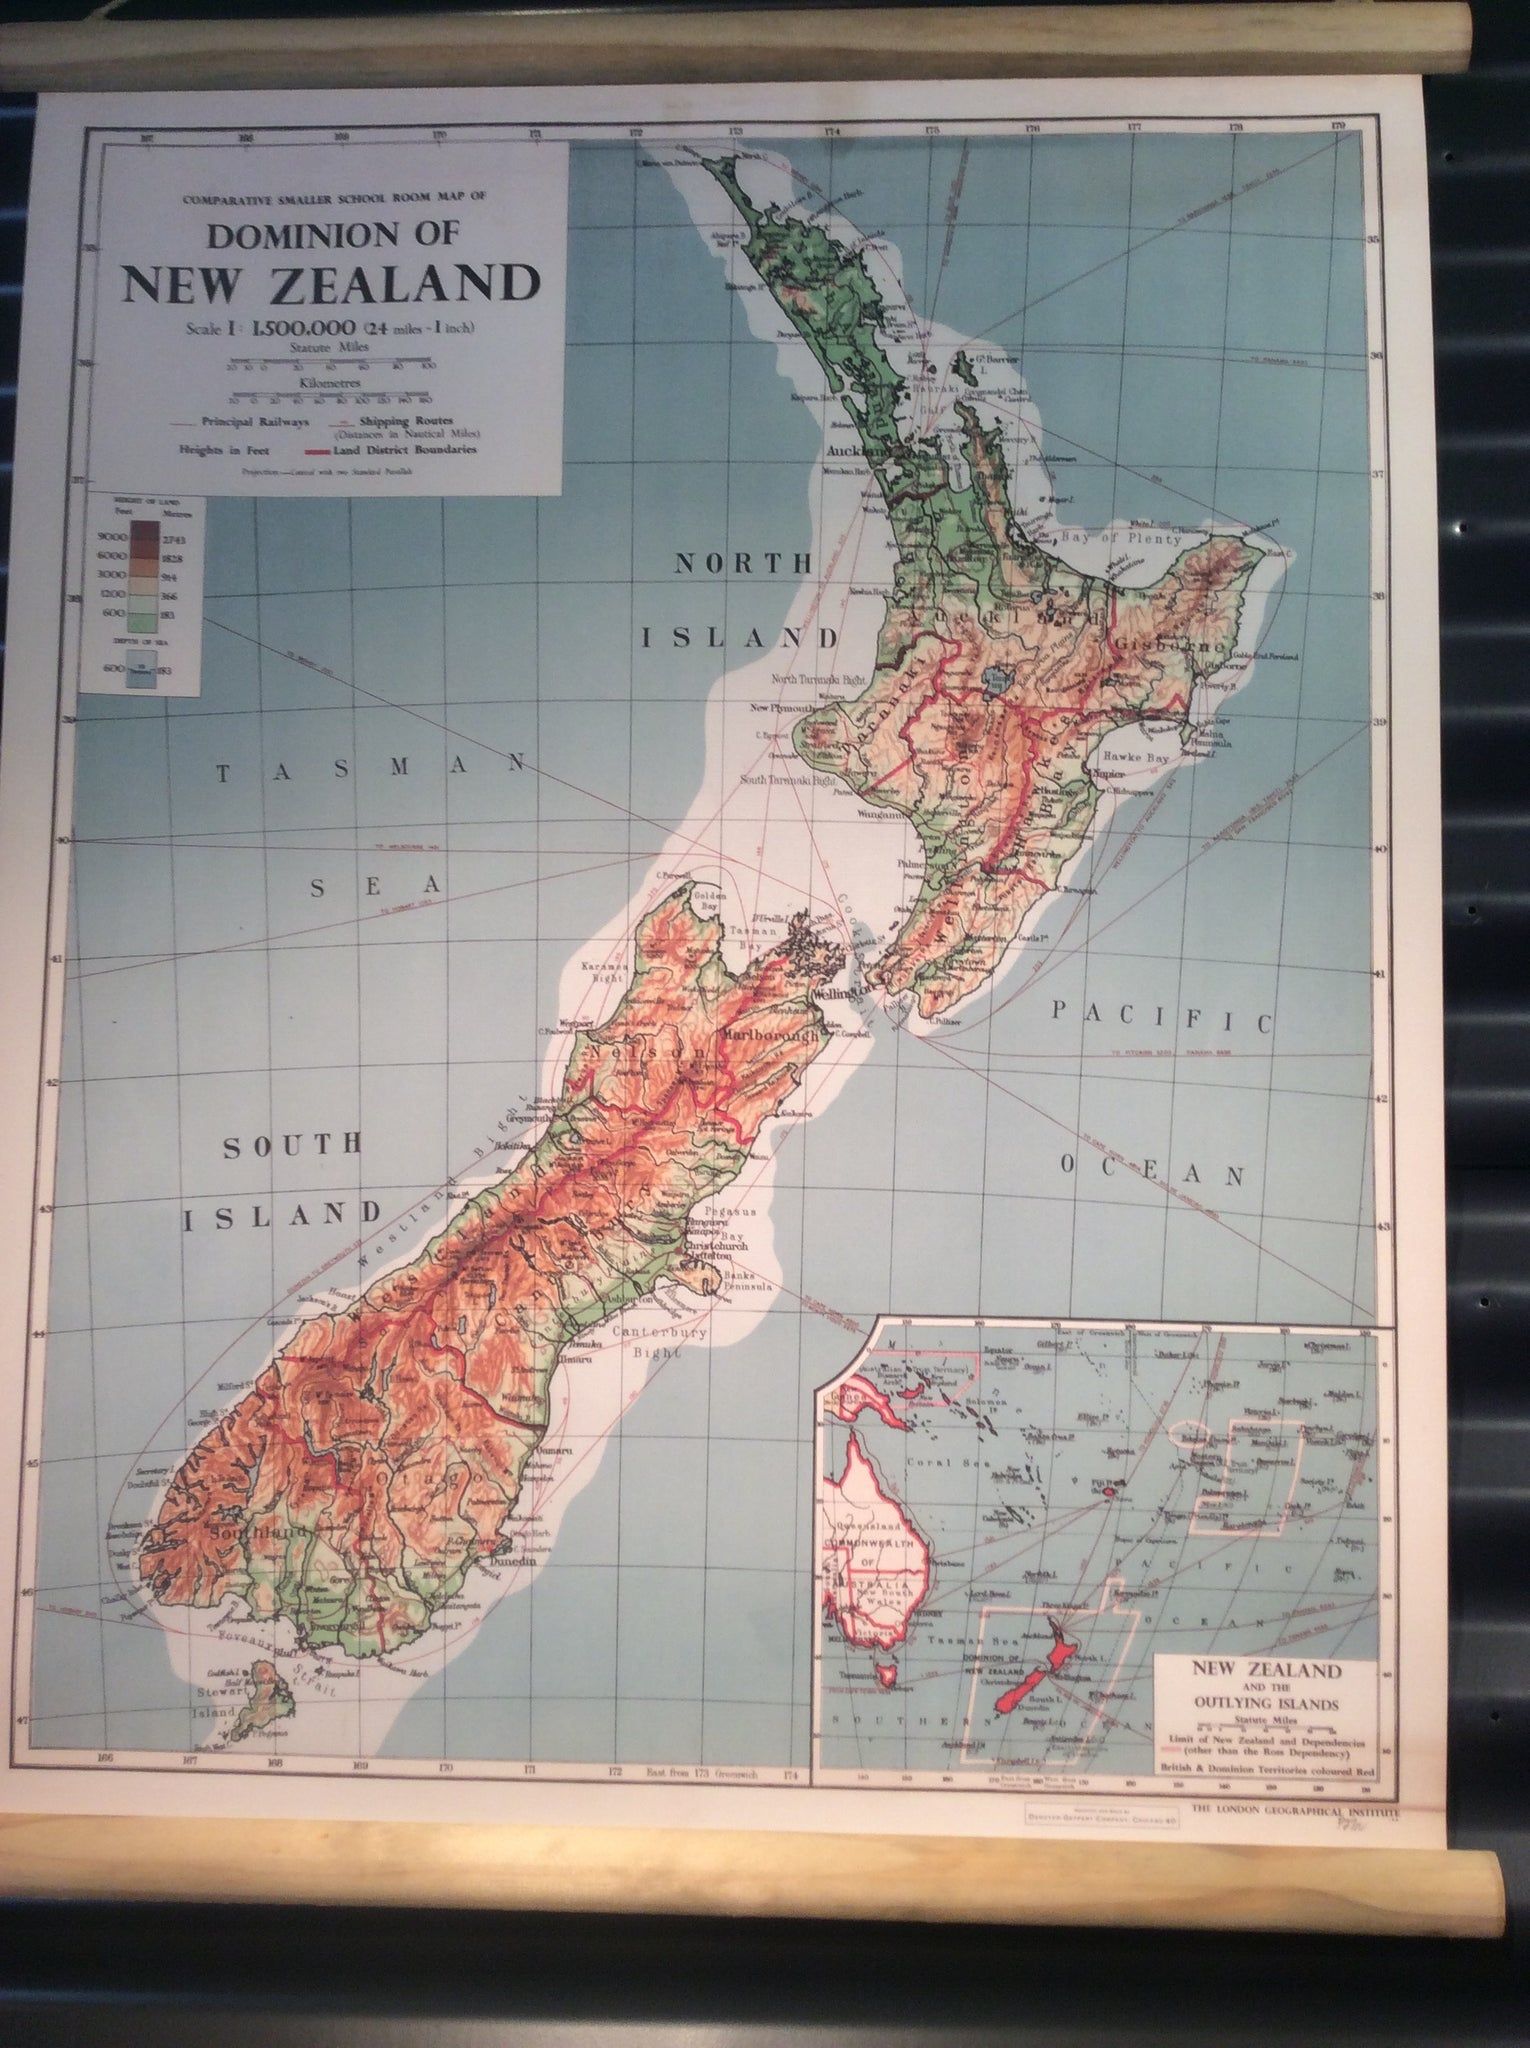 Nz Dominion Map-600mm